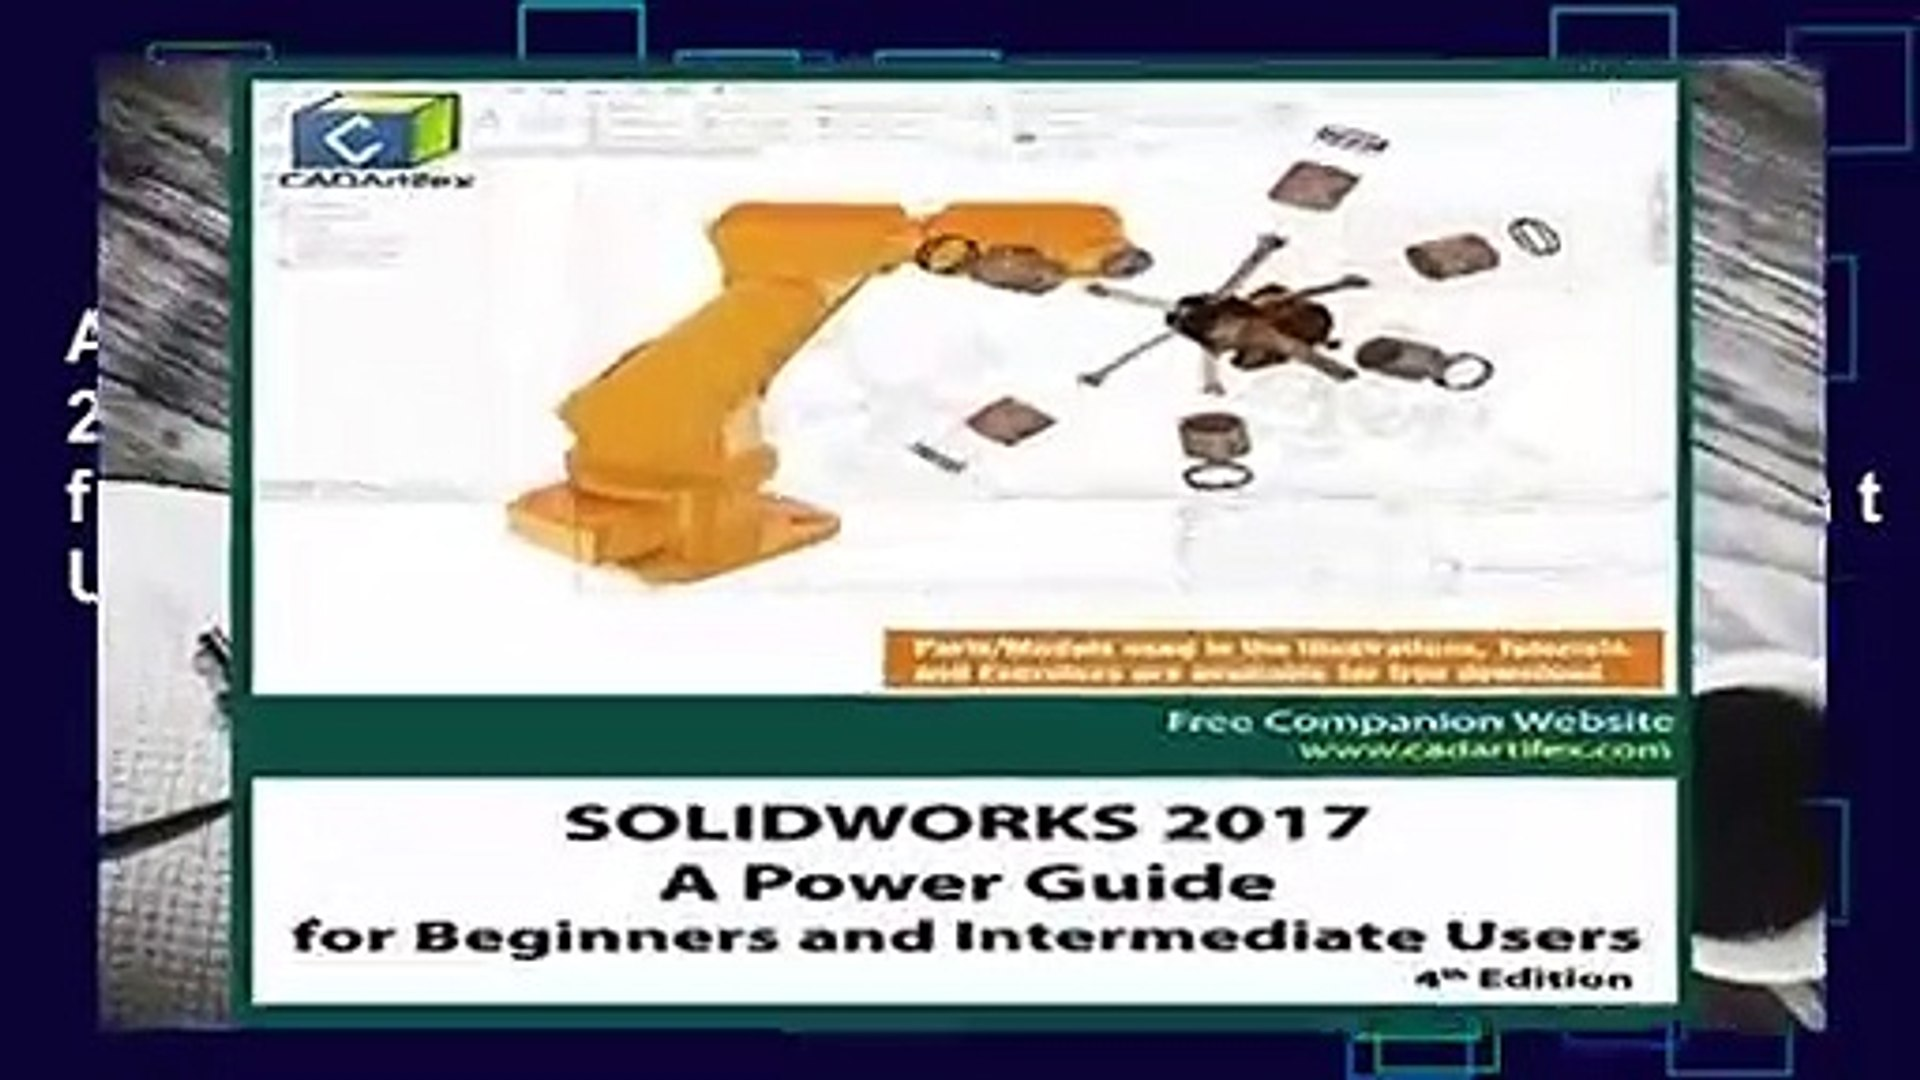 SOLIDWORKS 2016 A Power Guide for Beginners and Intermediate Users